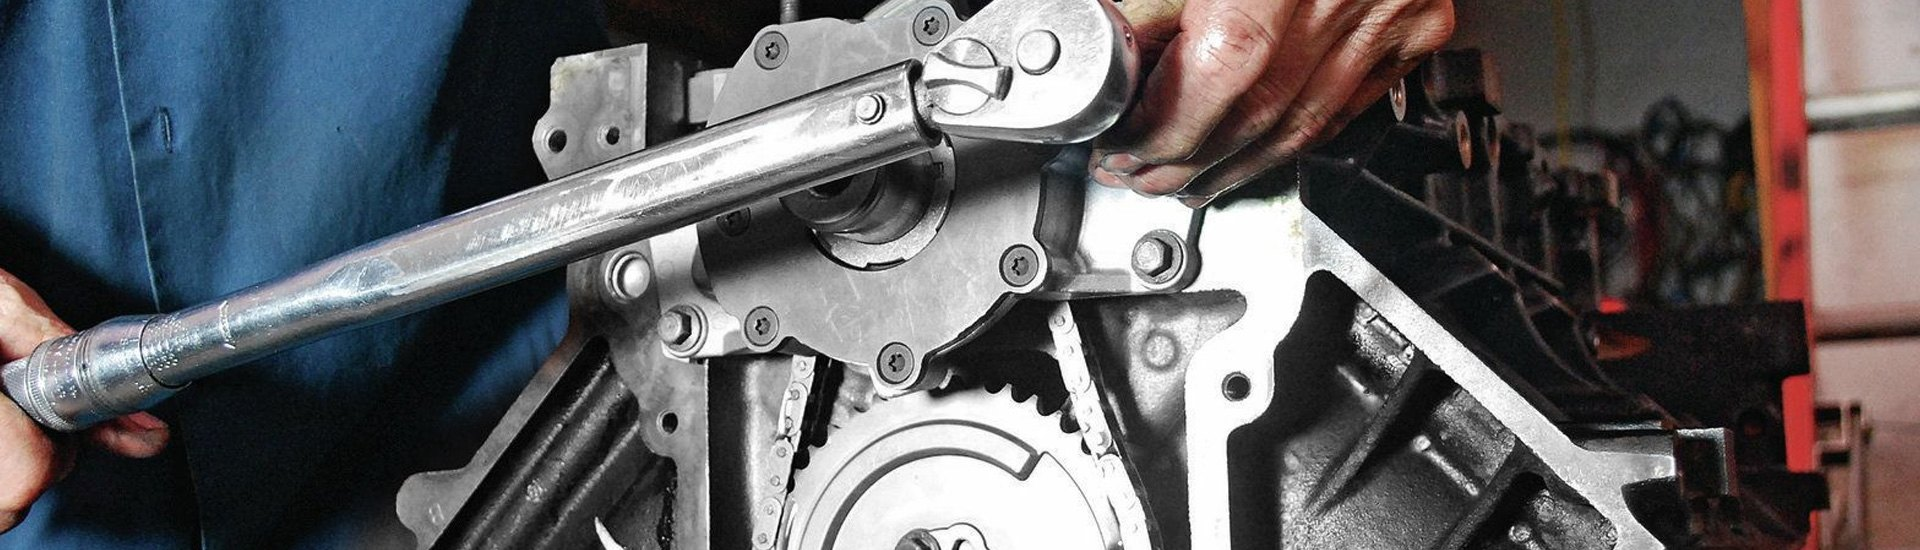 Timing Belts, Chains & Gears